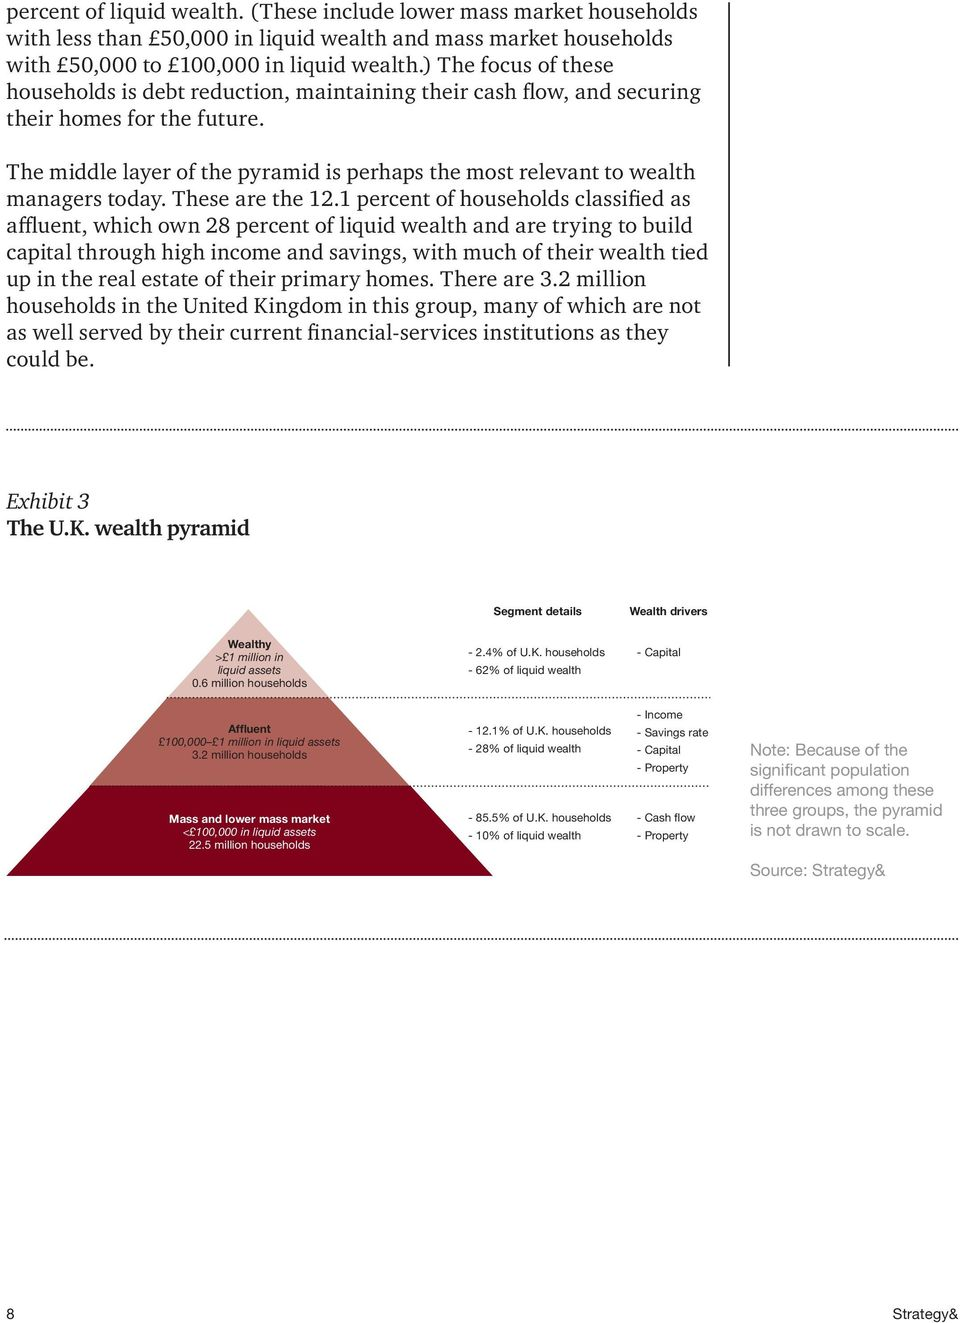 The middle layer of the pyramid is perhaps the most relevant to wealth managers today. These are the 12.